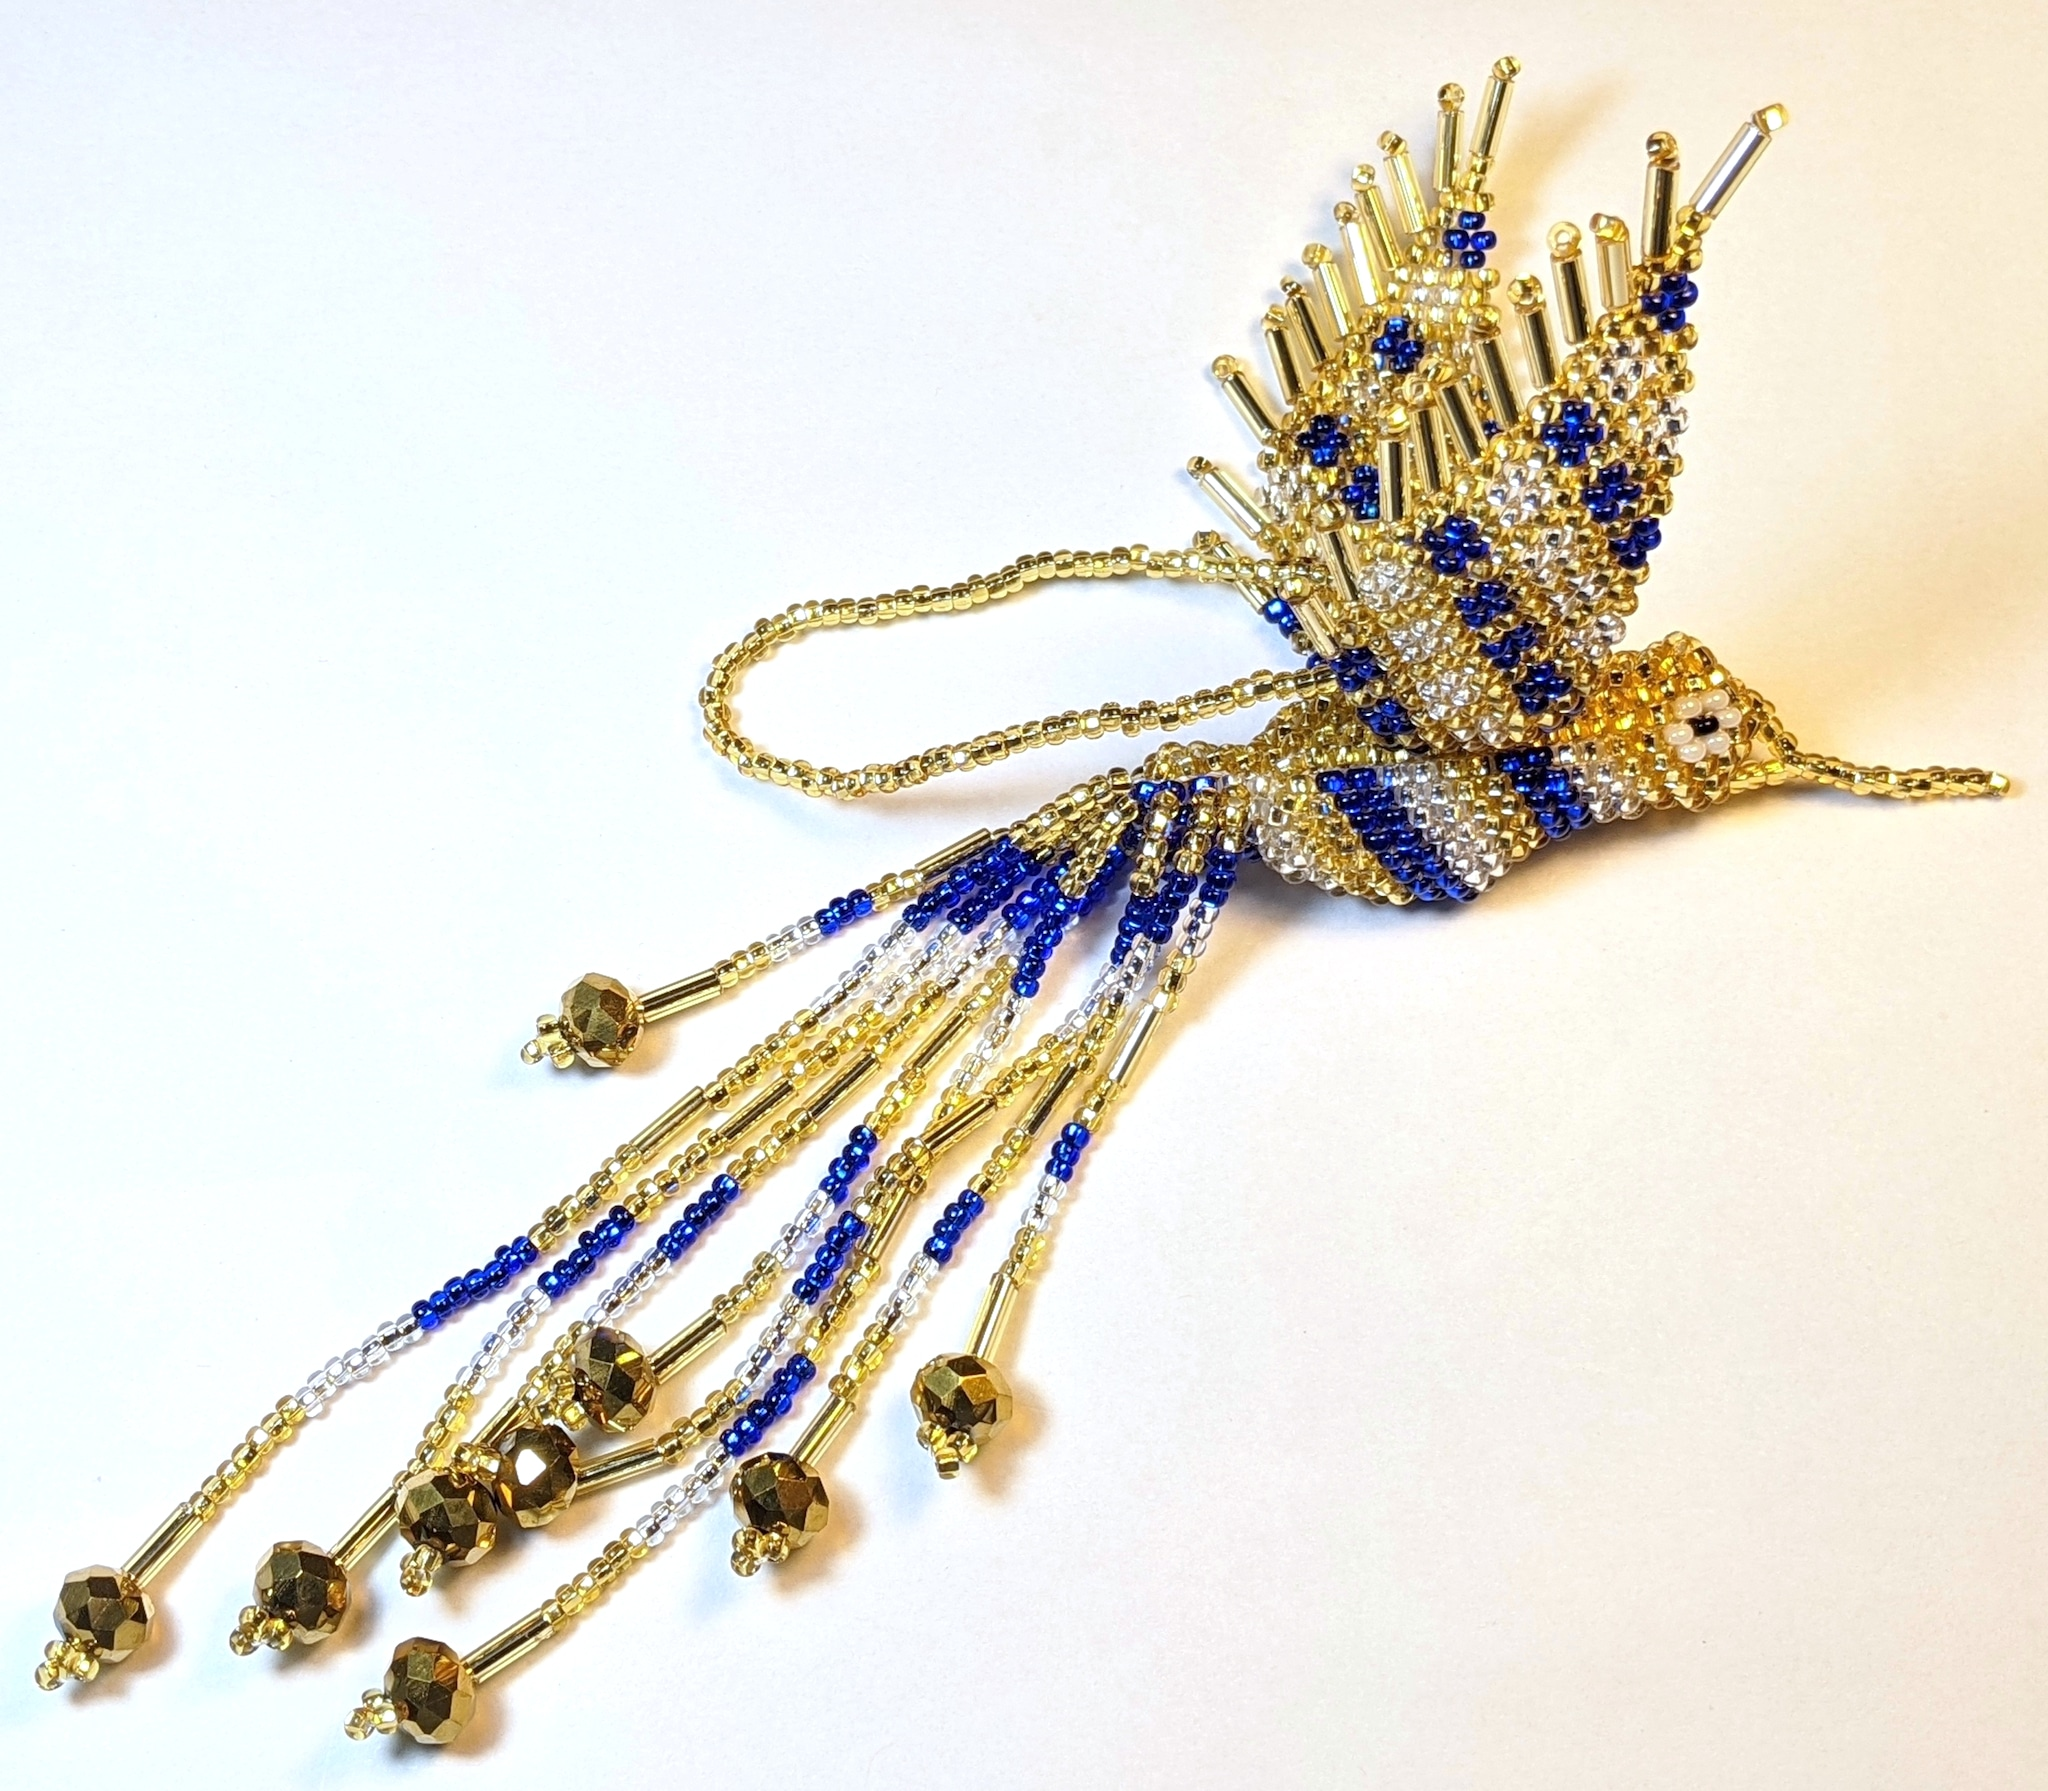 Hummingbird Beaded Ornament - Sapphire Blue, Light Gold, and Silver White